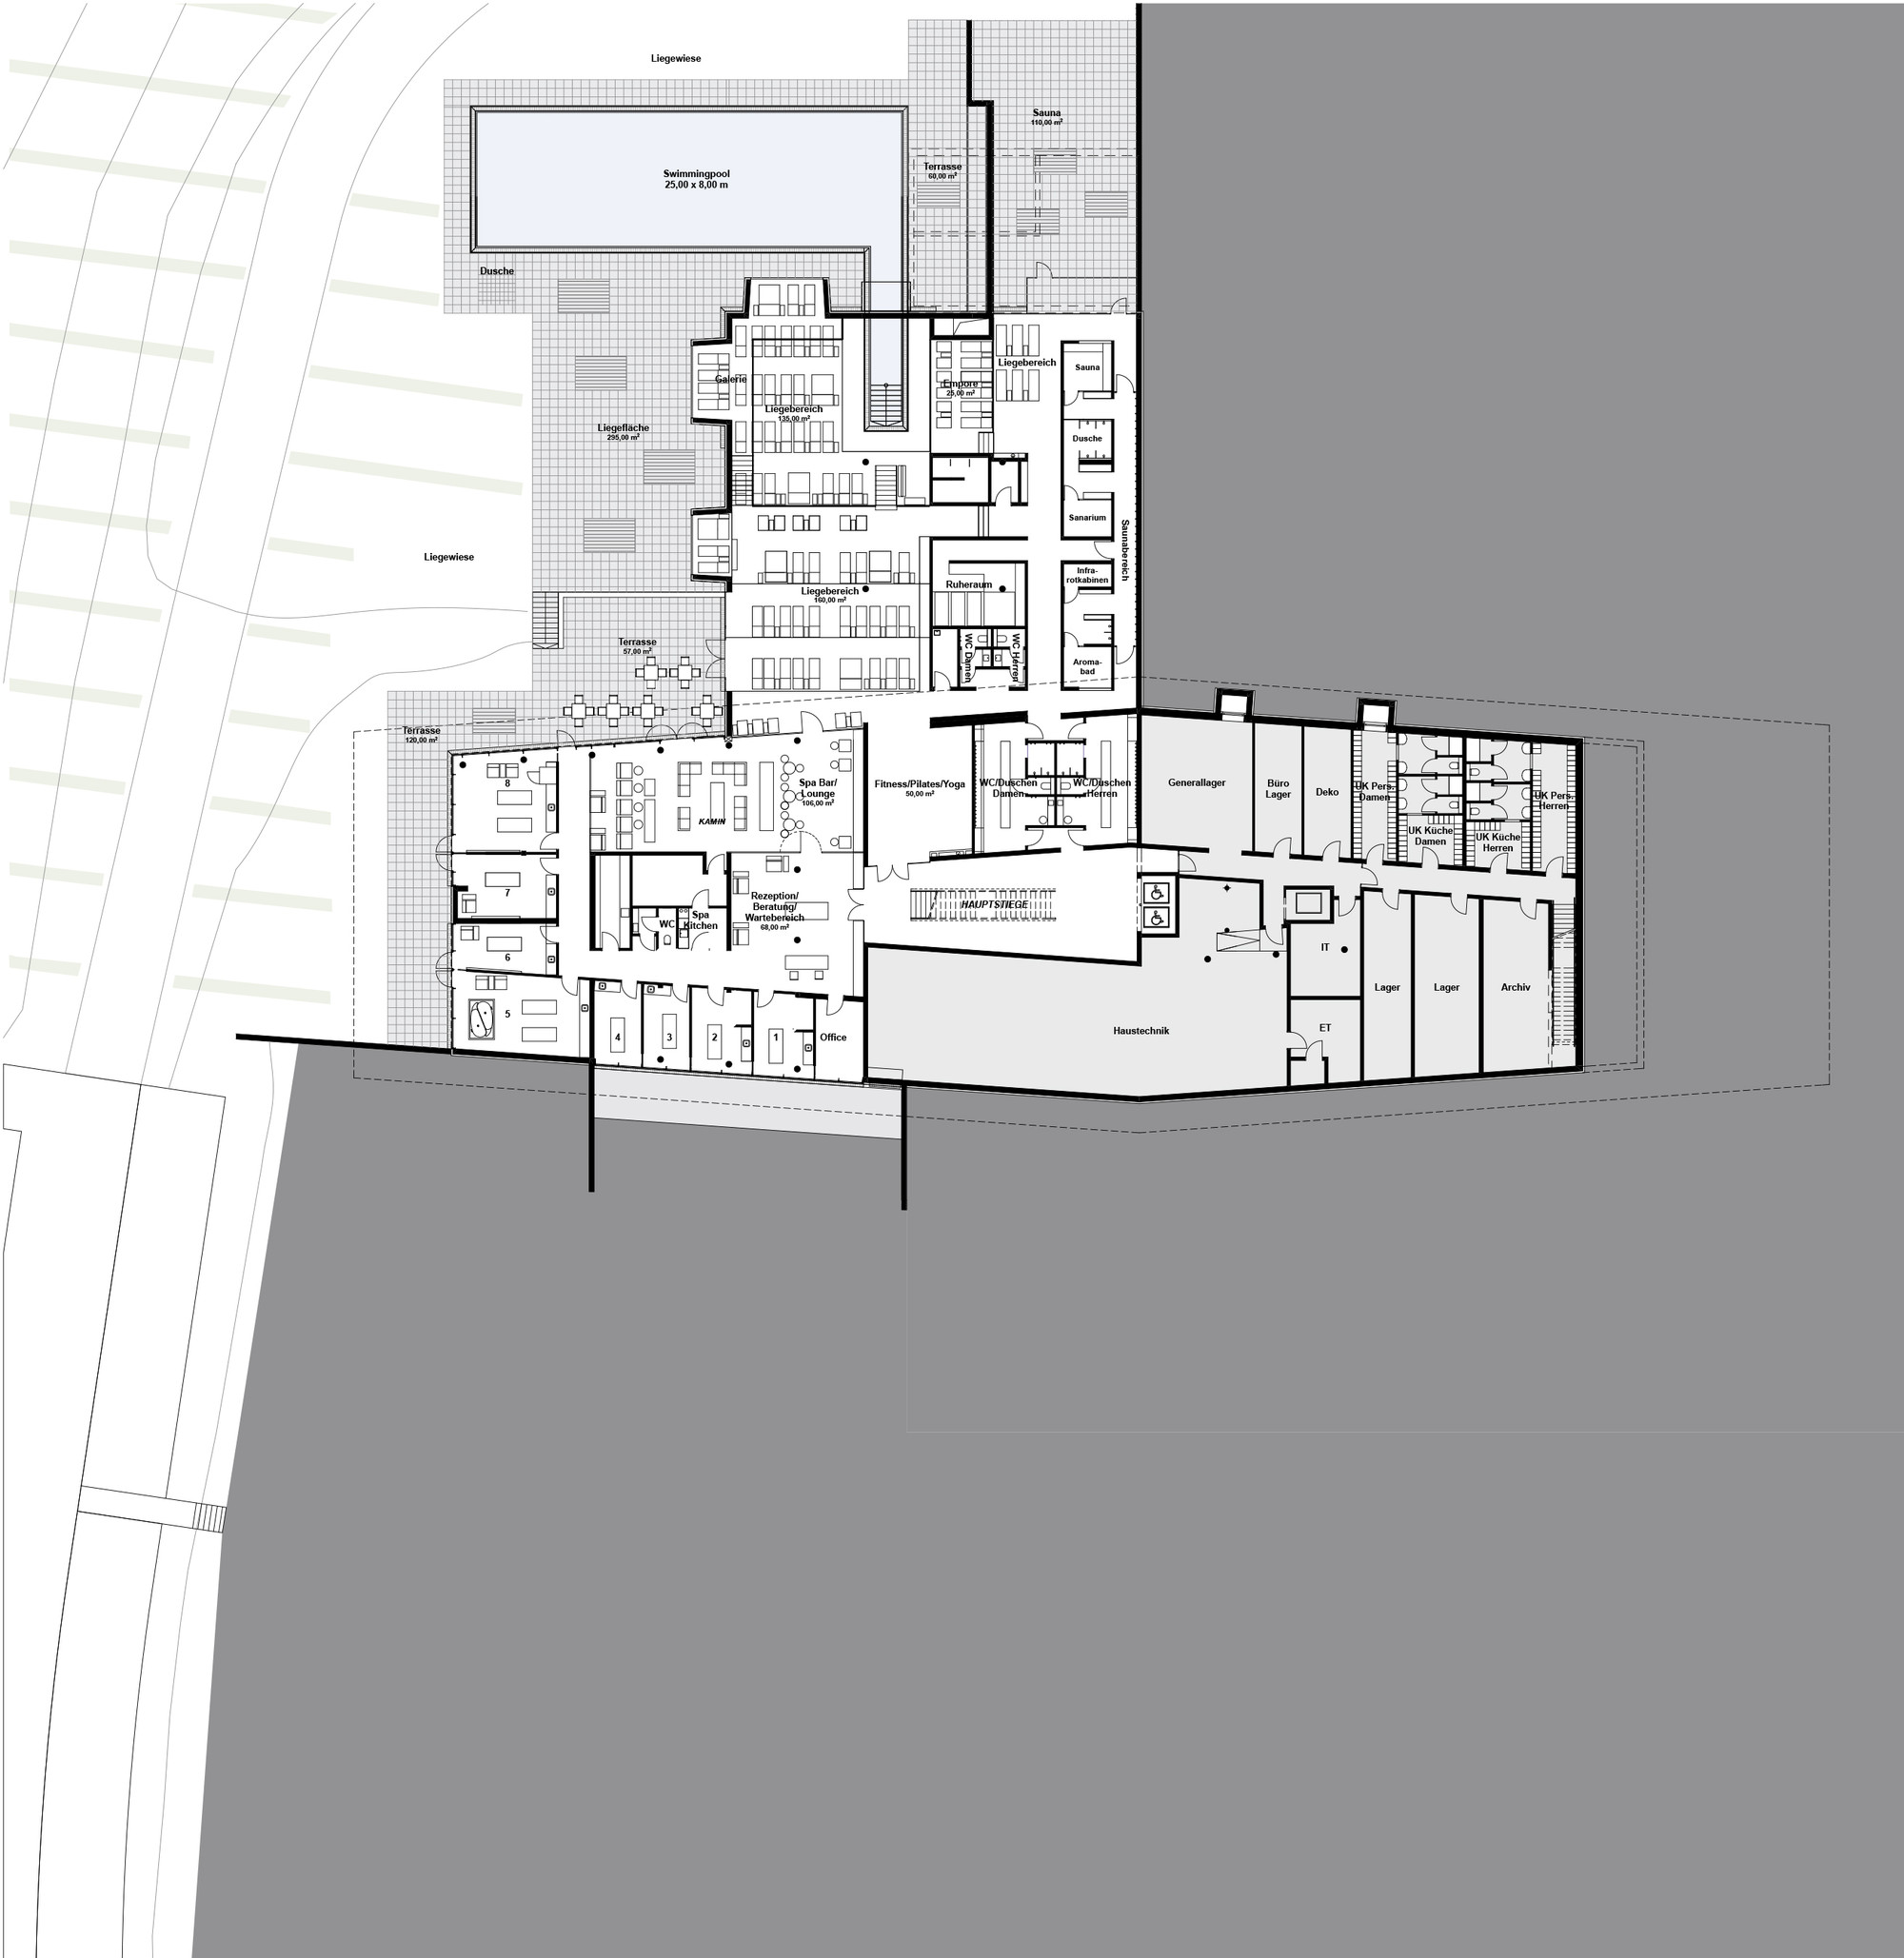 Galer a de loisium wine spa resorts southern styria for Hotel design 987 4